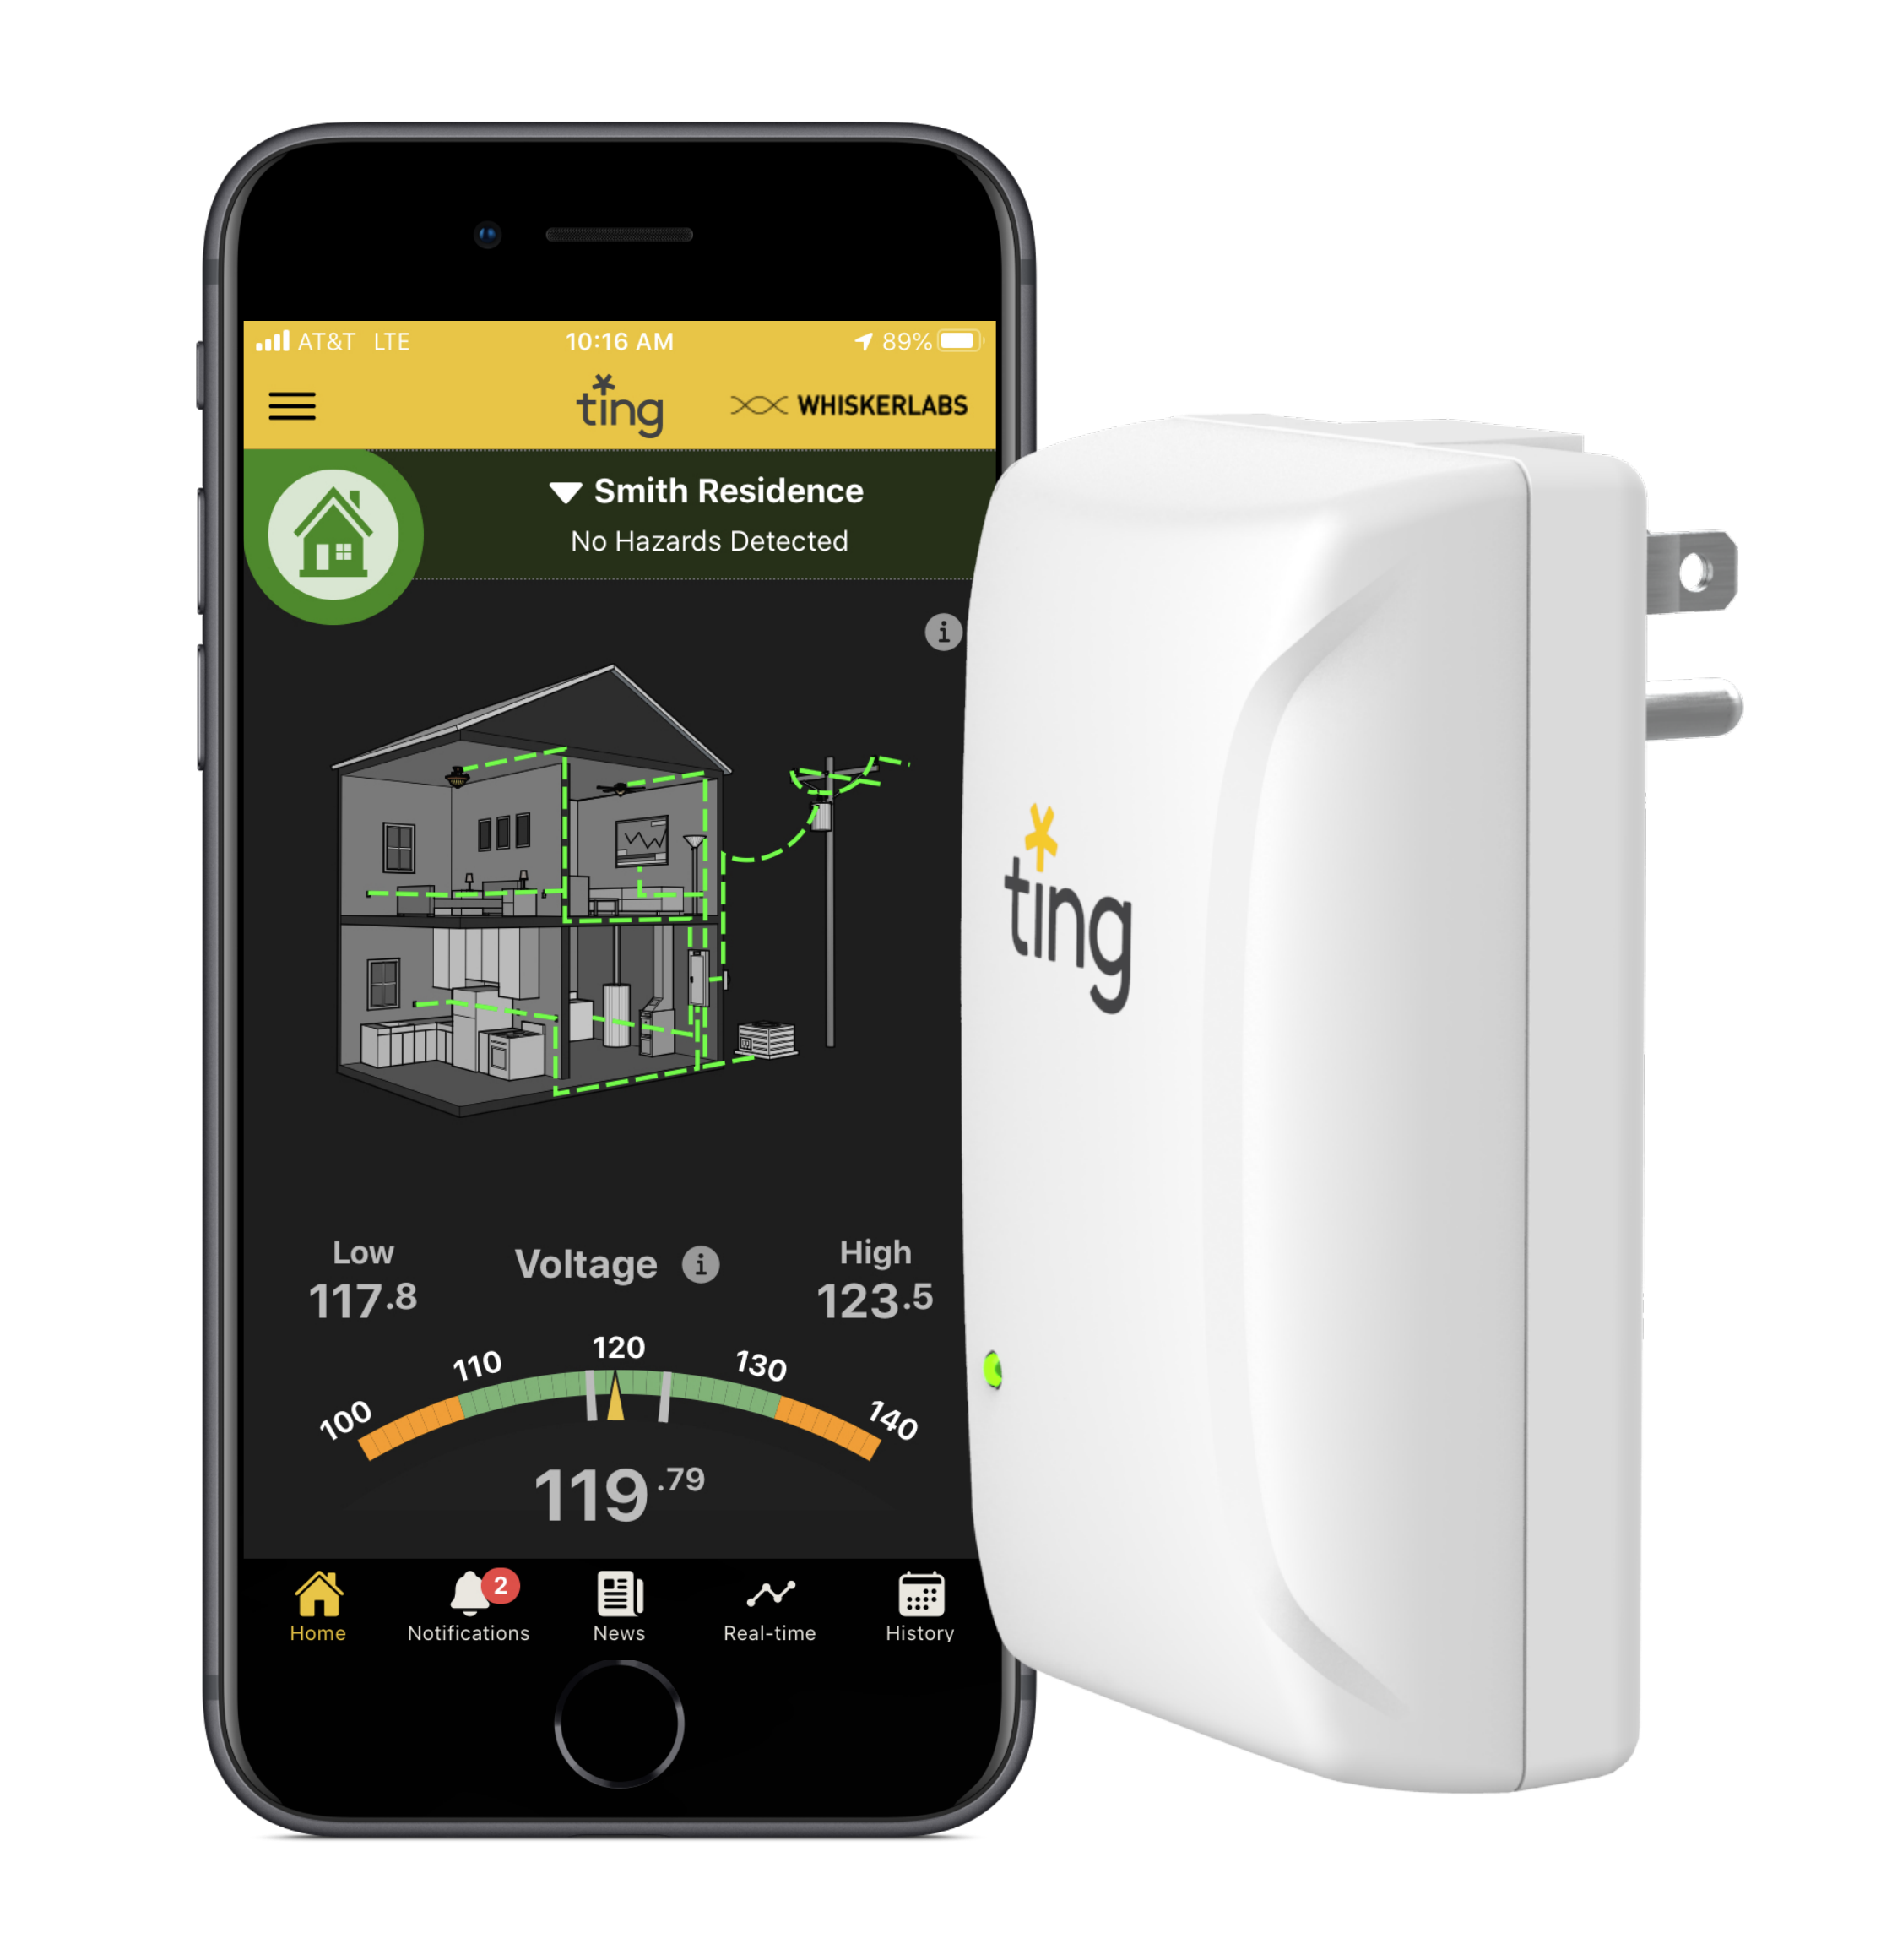 Ting app home page on smartphone, next to Ting sensor